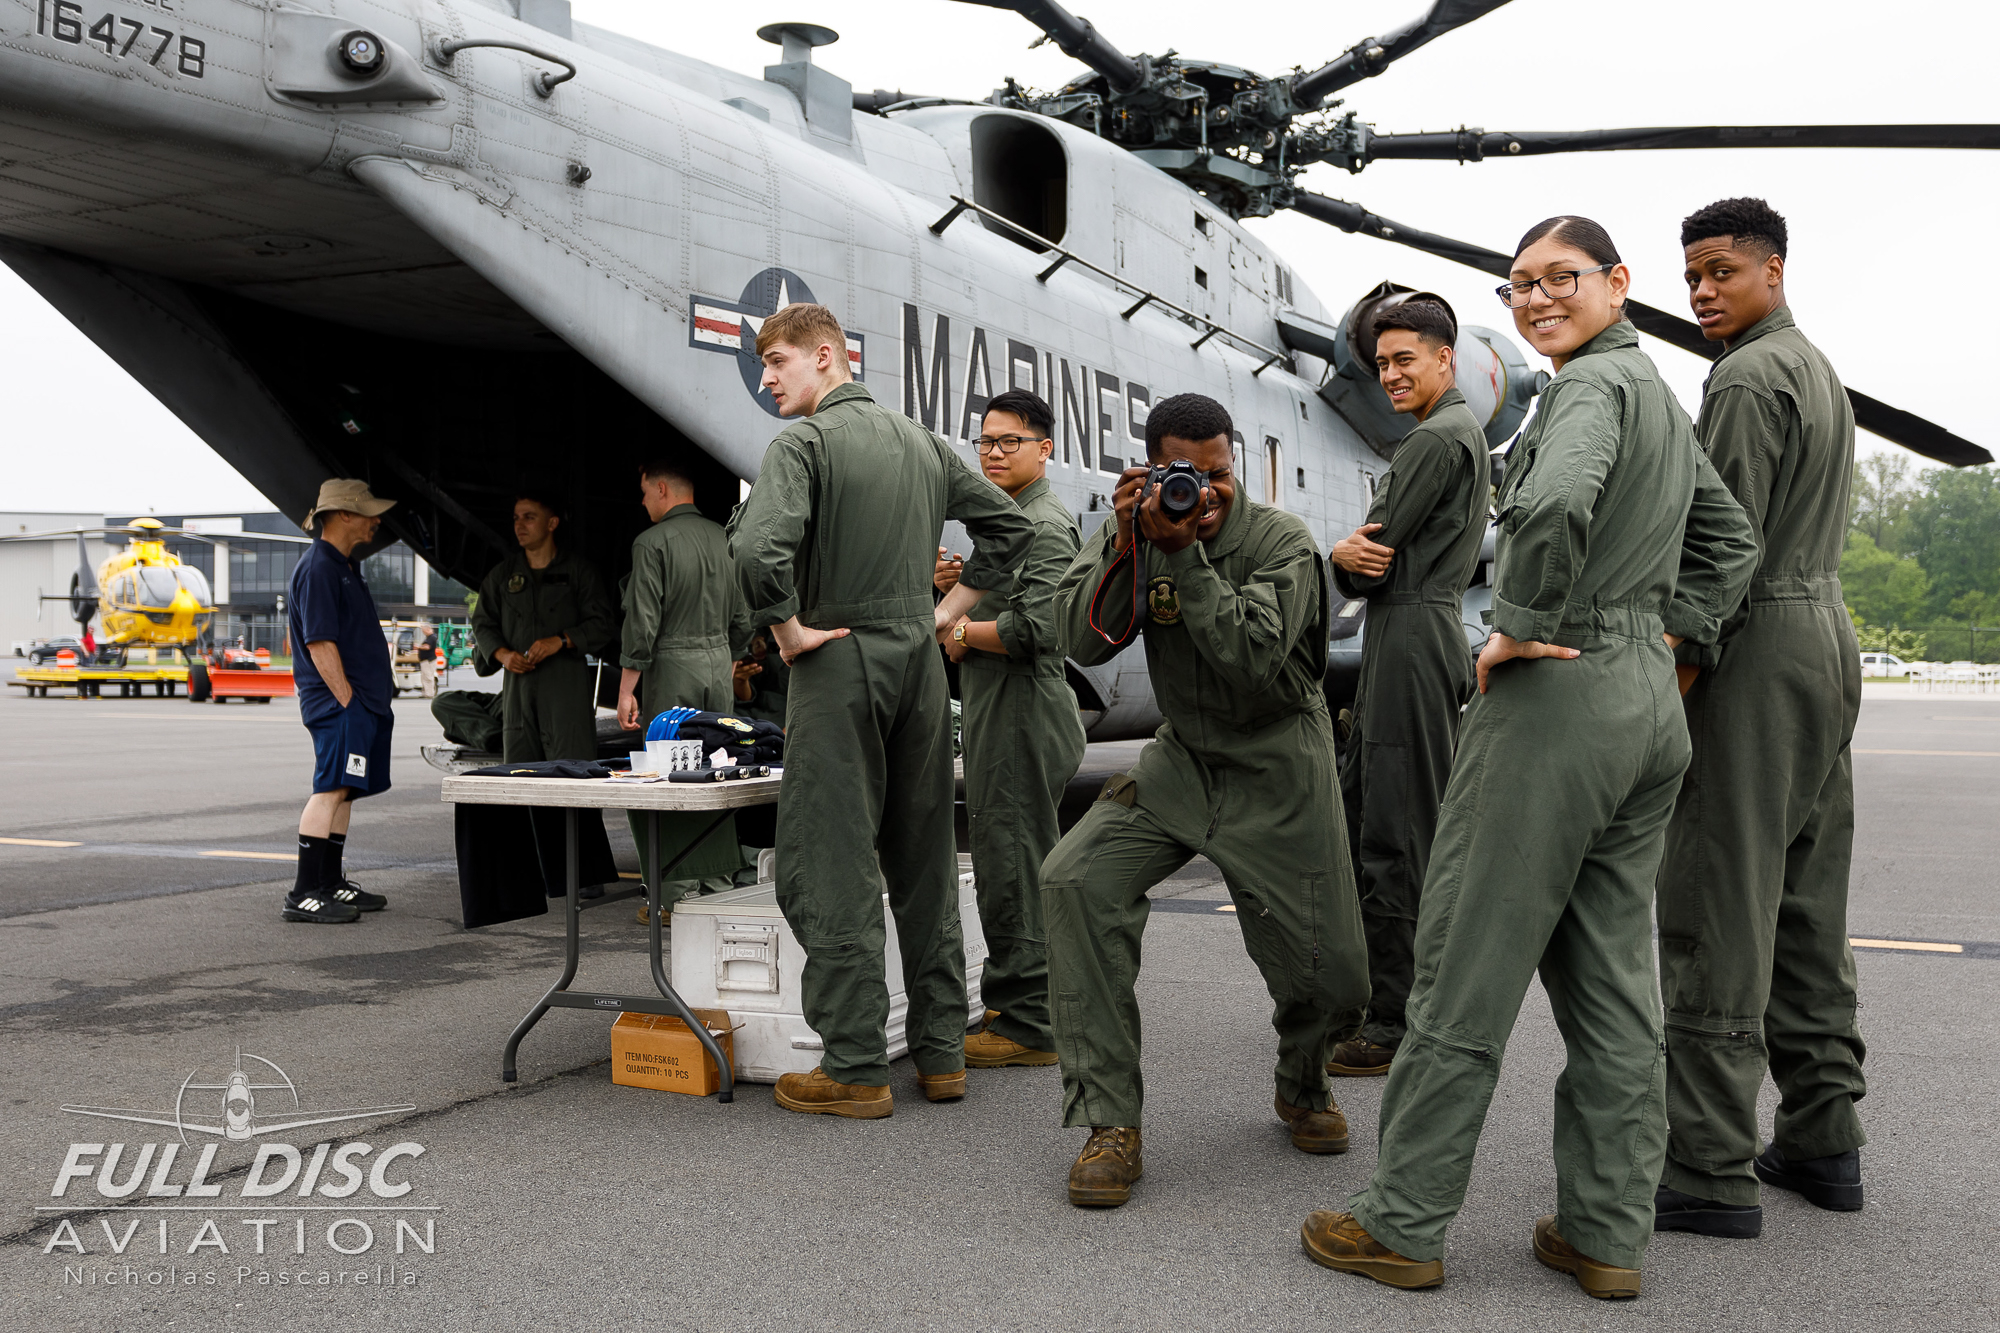 ch53_aircrew_photoofaphoto_seastallion_marines_usmarines__aviation__nickpascarella_nicholaspascarella_fulldiscaviation_leasewebmanassasairshow.jpg